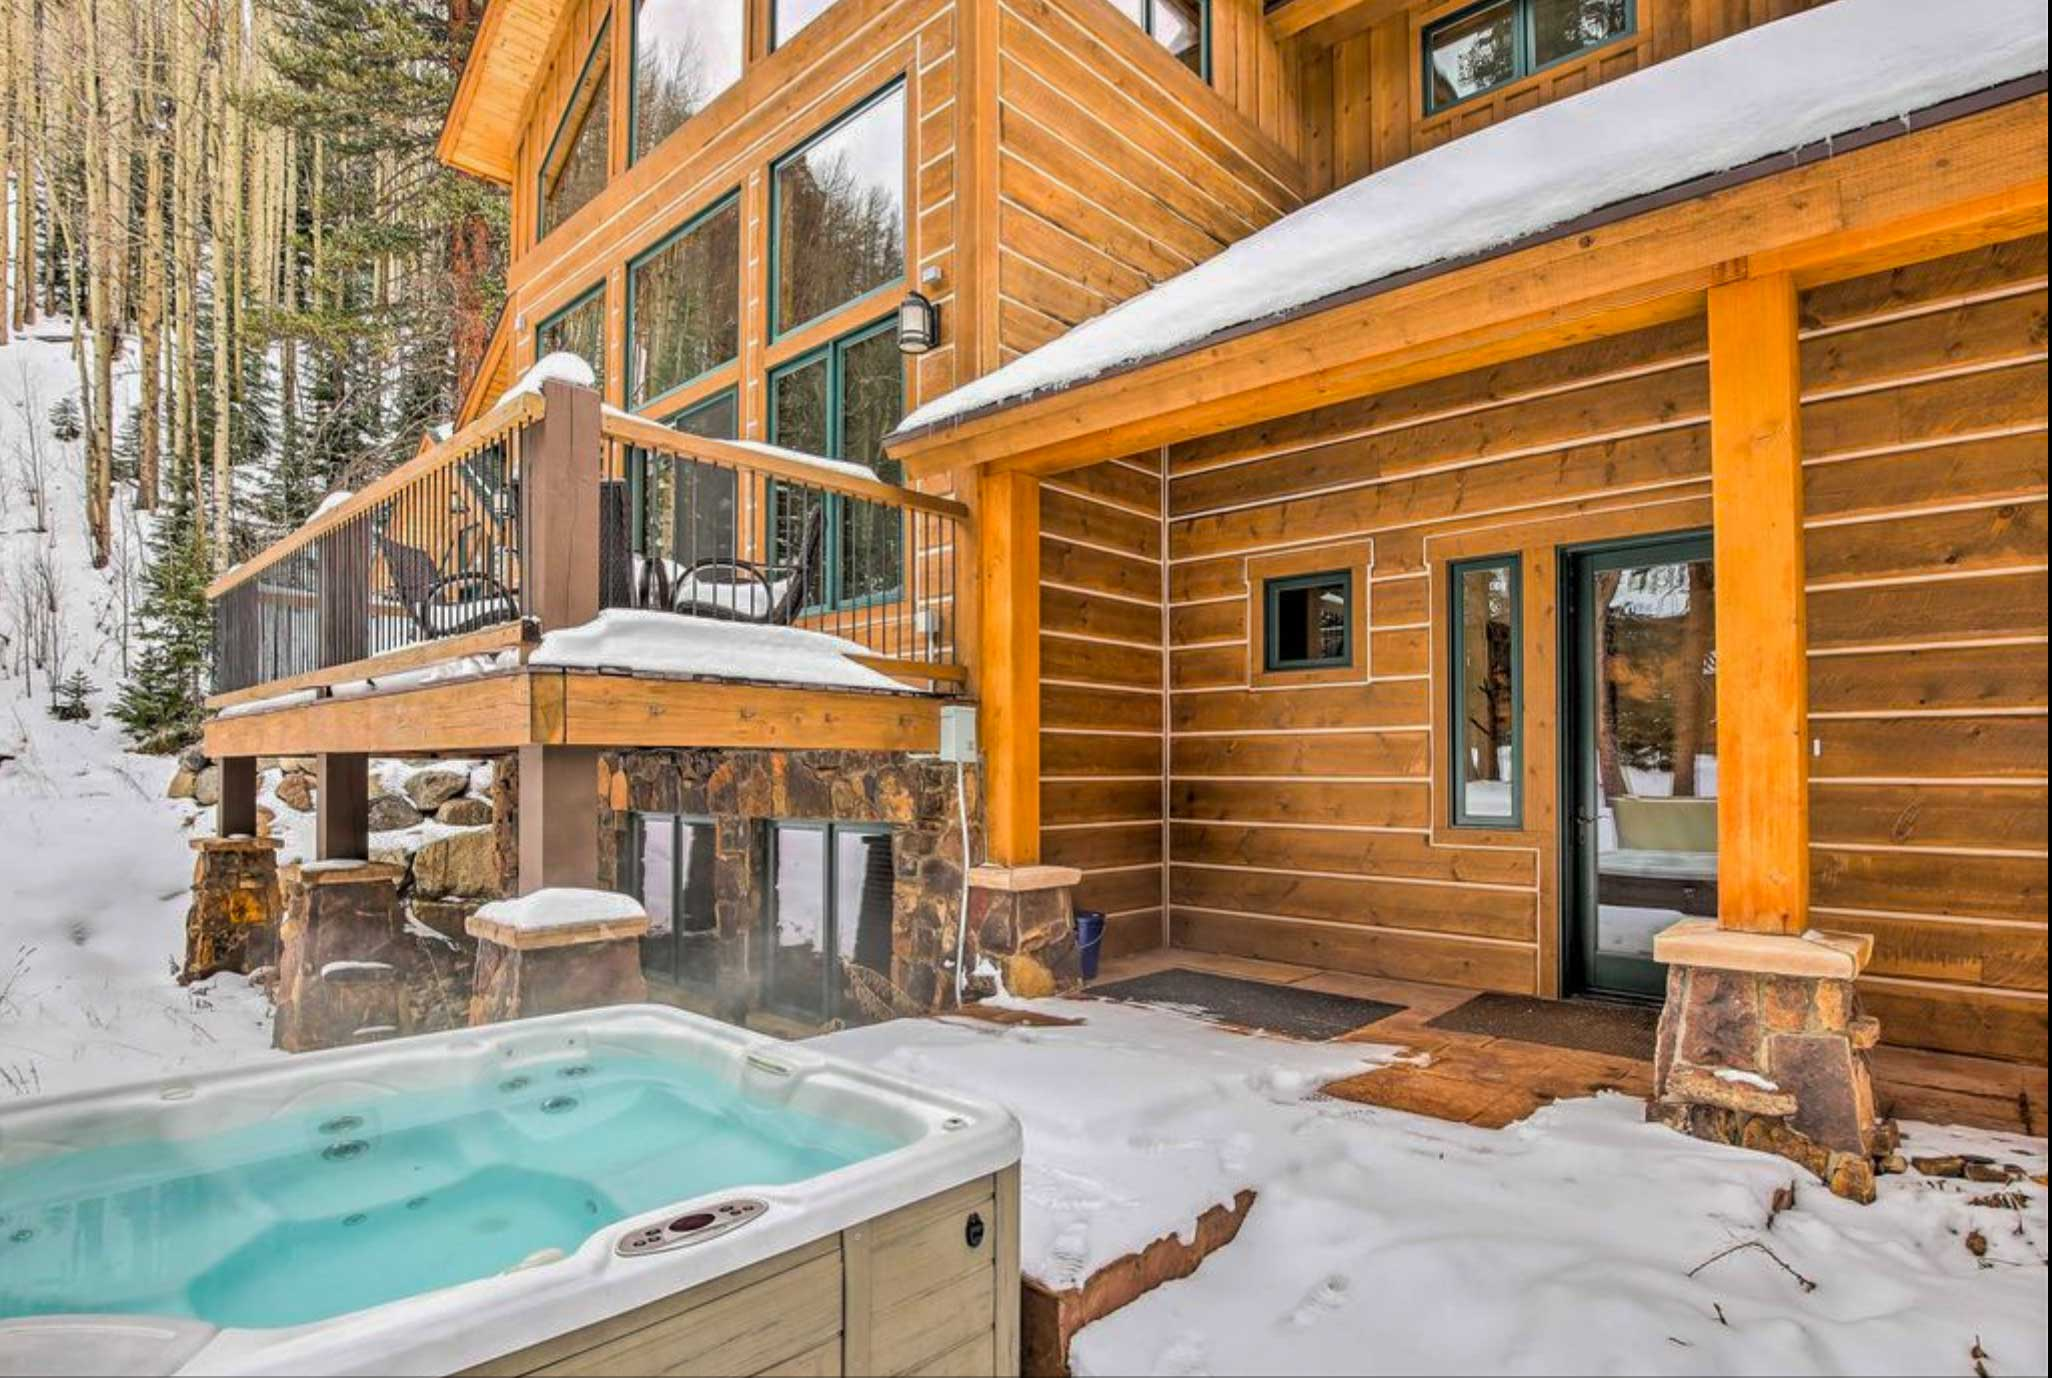 After a day on the slopes, take a dip in the hot tub!